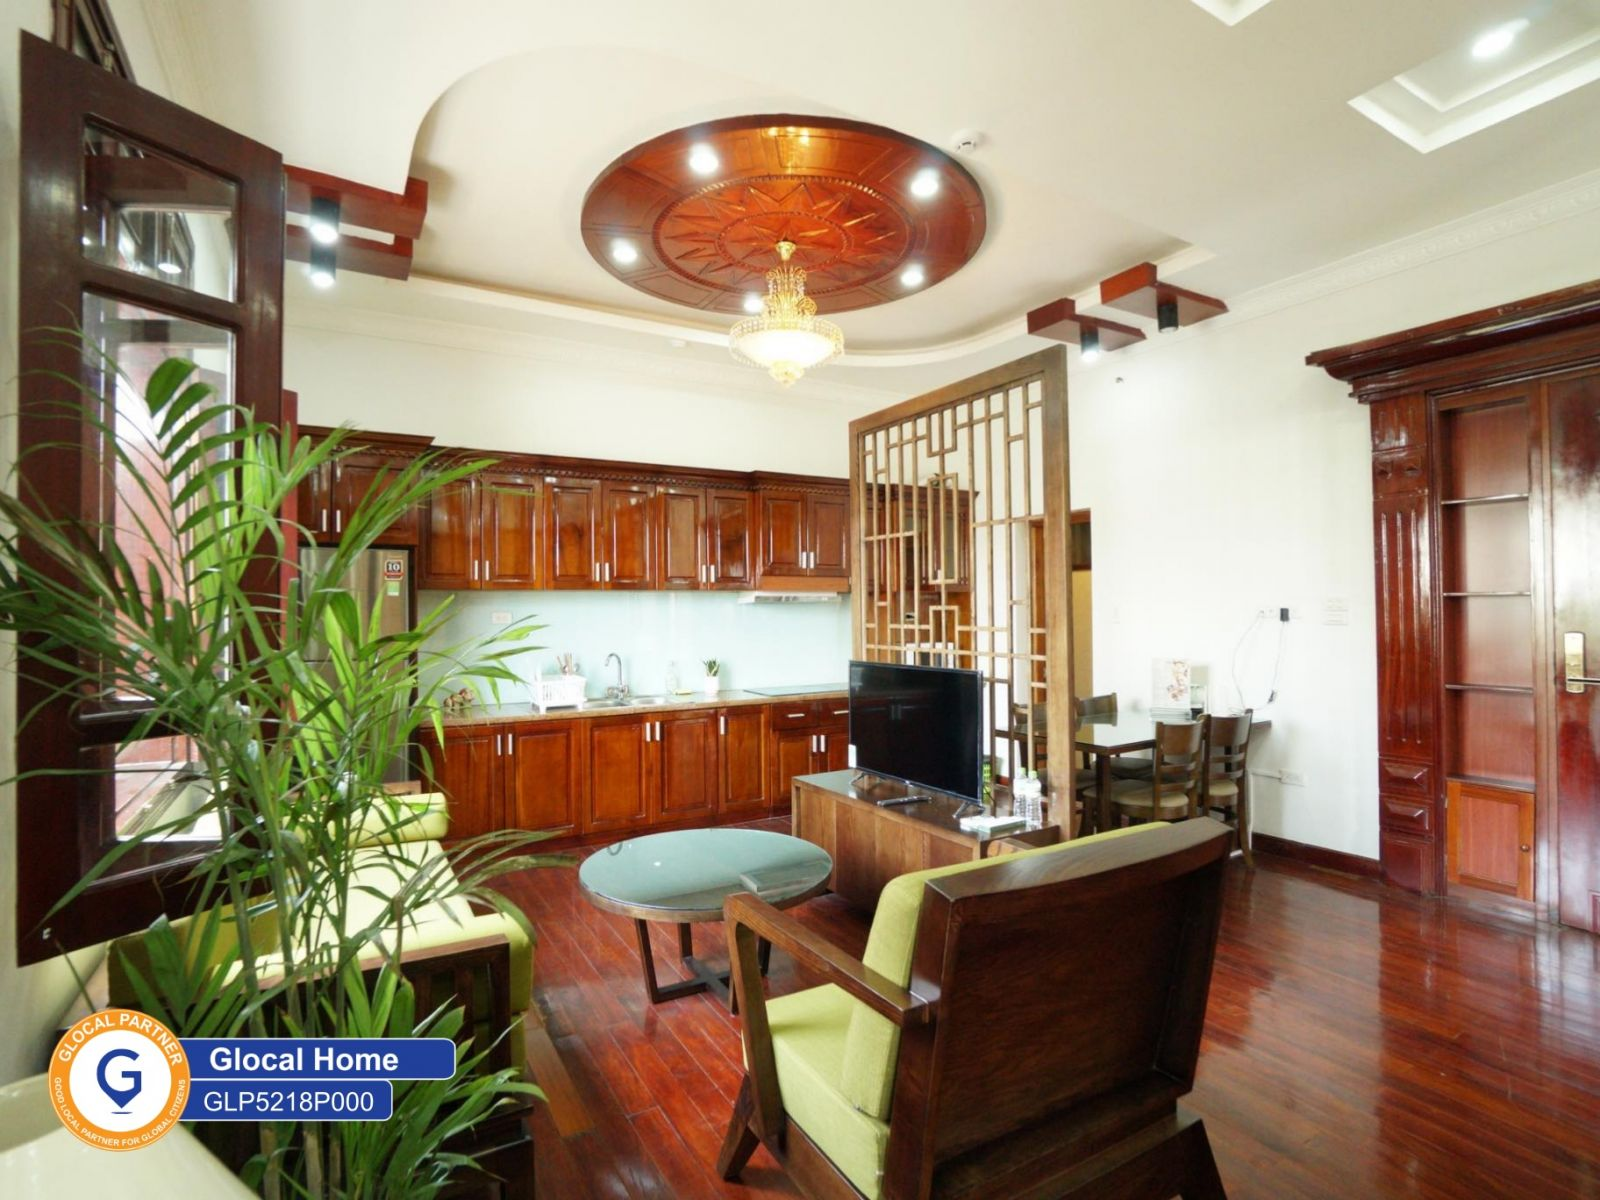 1 bedroom apartment with wooden floor and nice lake view in Quang Khanh